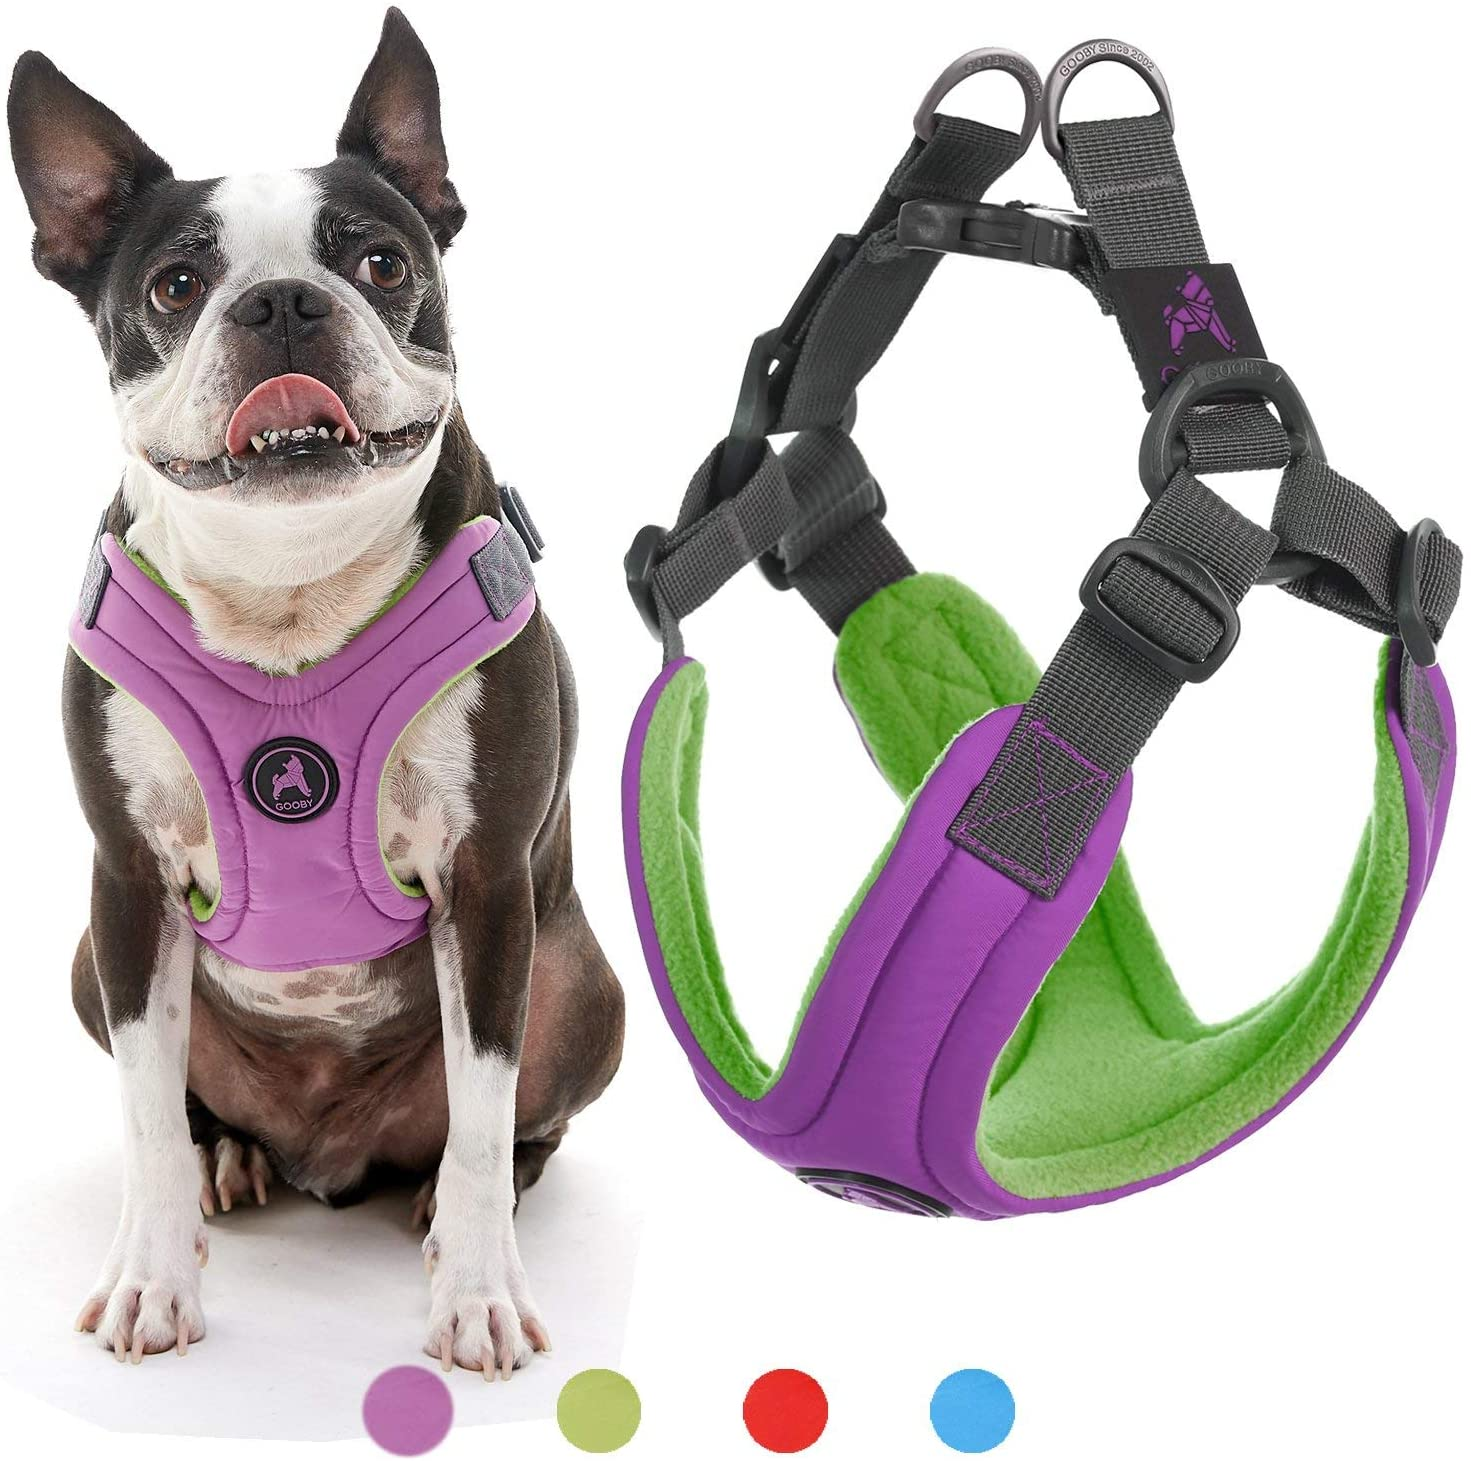 Gooby Dog Harness - Blue, Large - Escape Free Memory Foam Step-in Small Dog Harness - Perfect on The Go Four-Point Adjustable - No Pull Harness for Small Dogs or Cat Harness